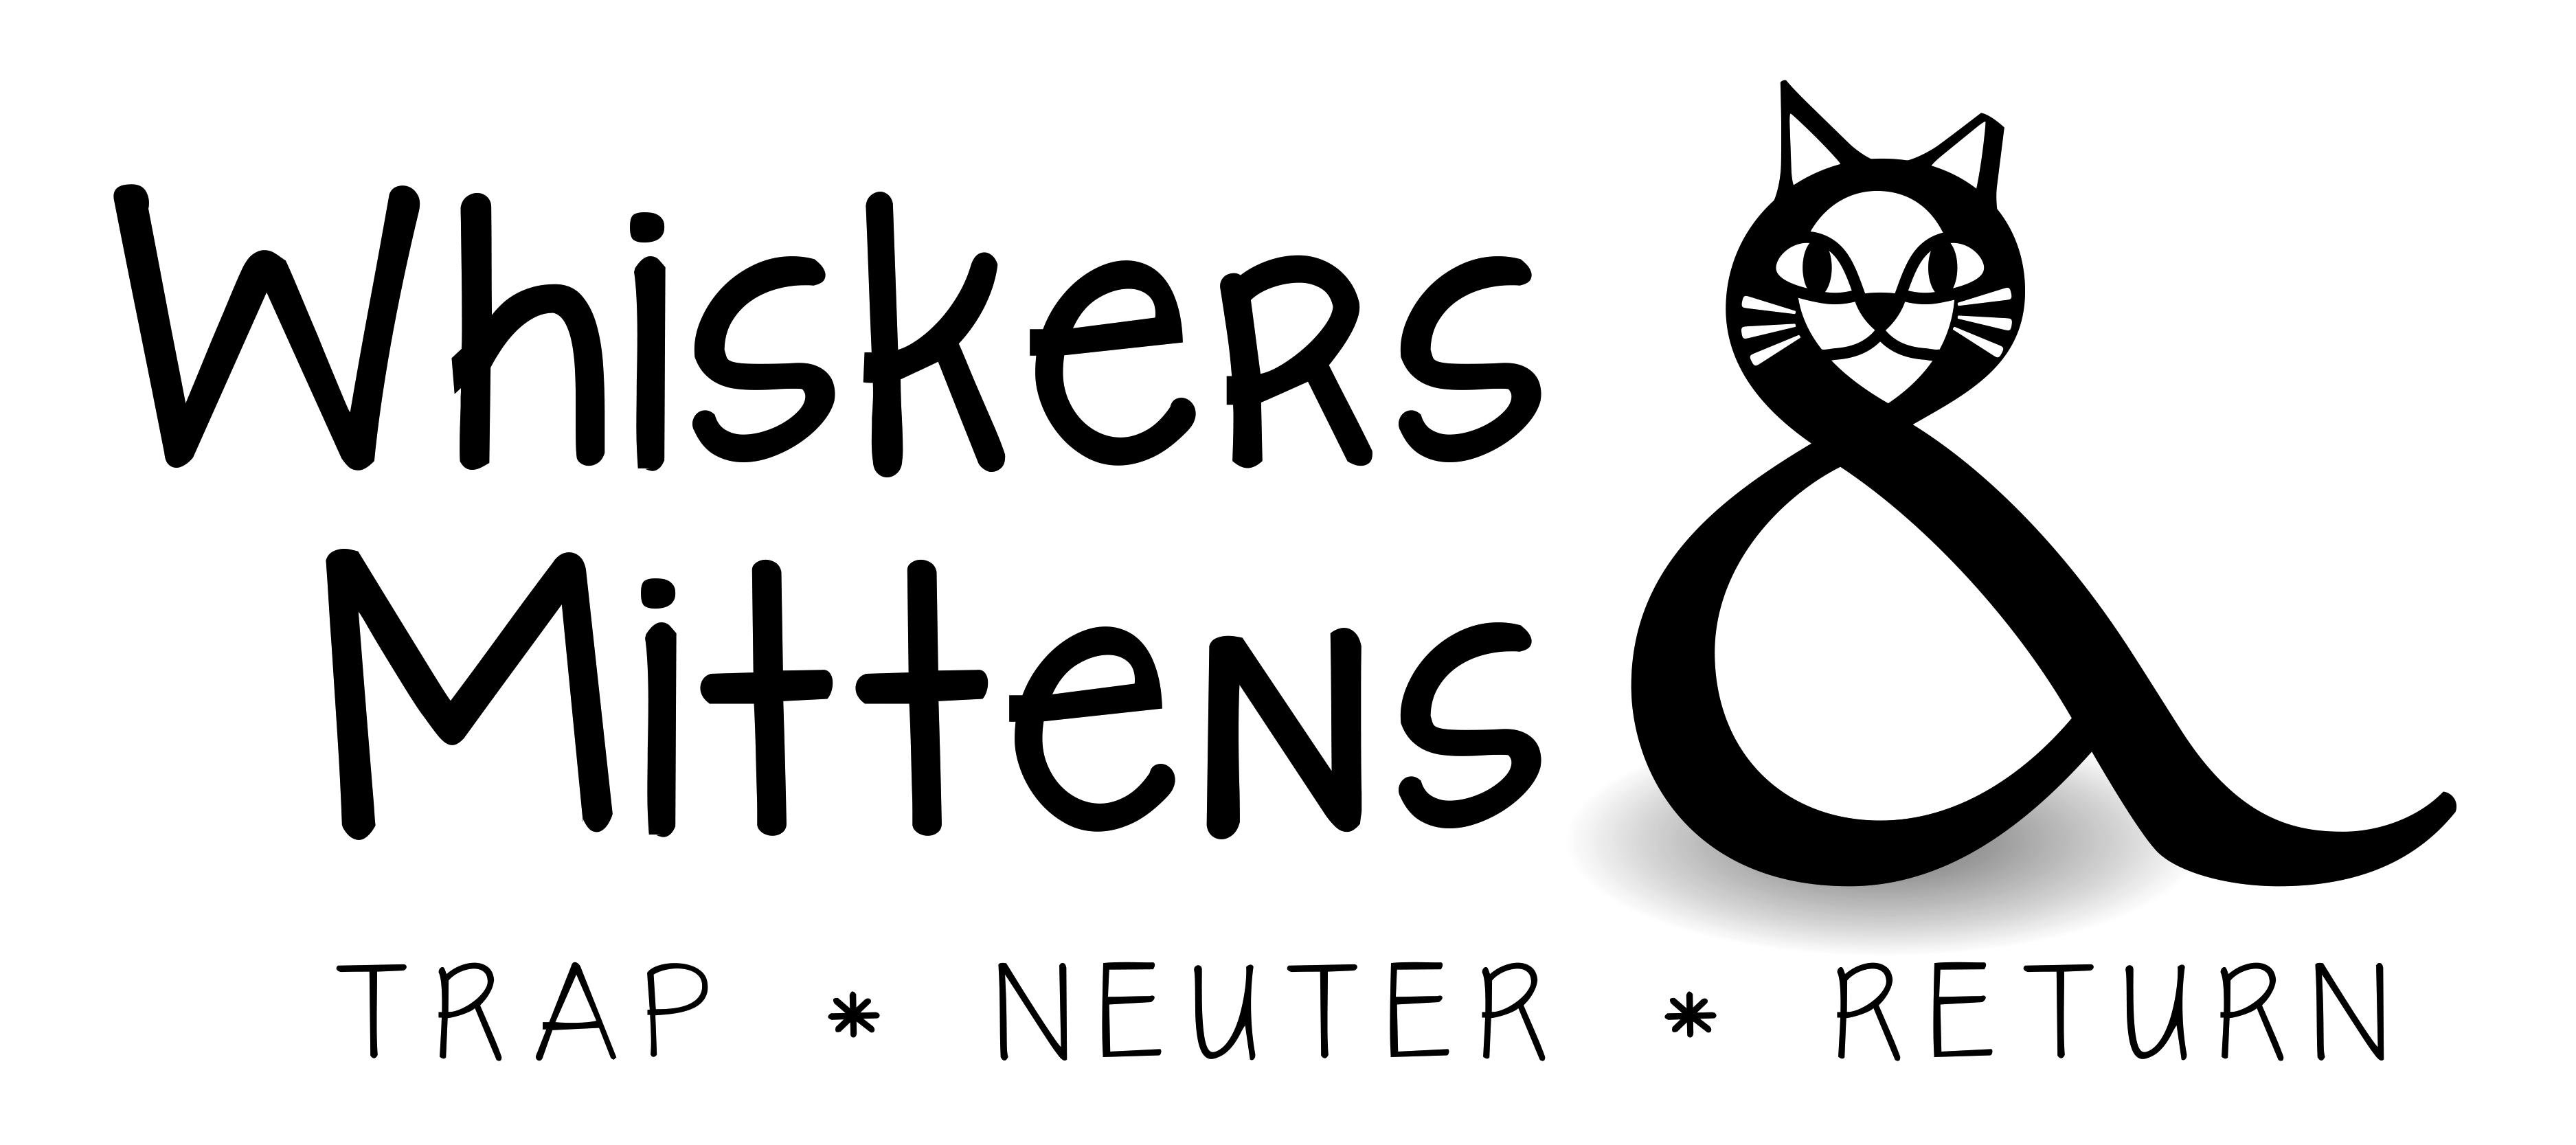 Whiskers & Mittens TNR